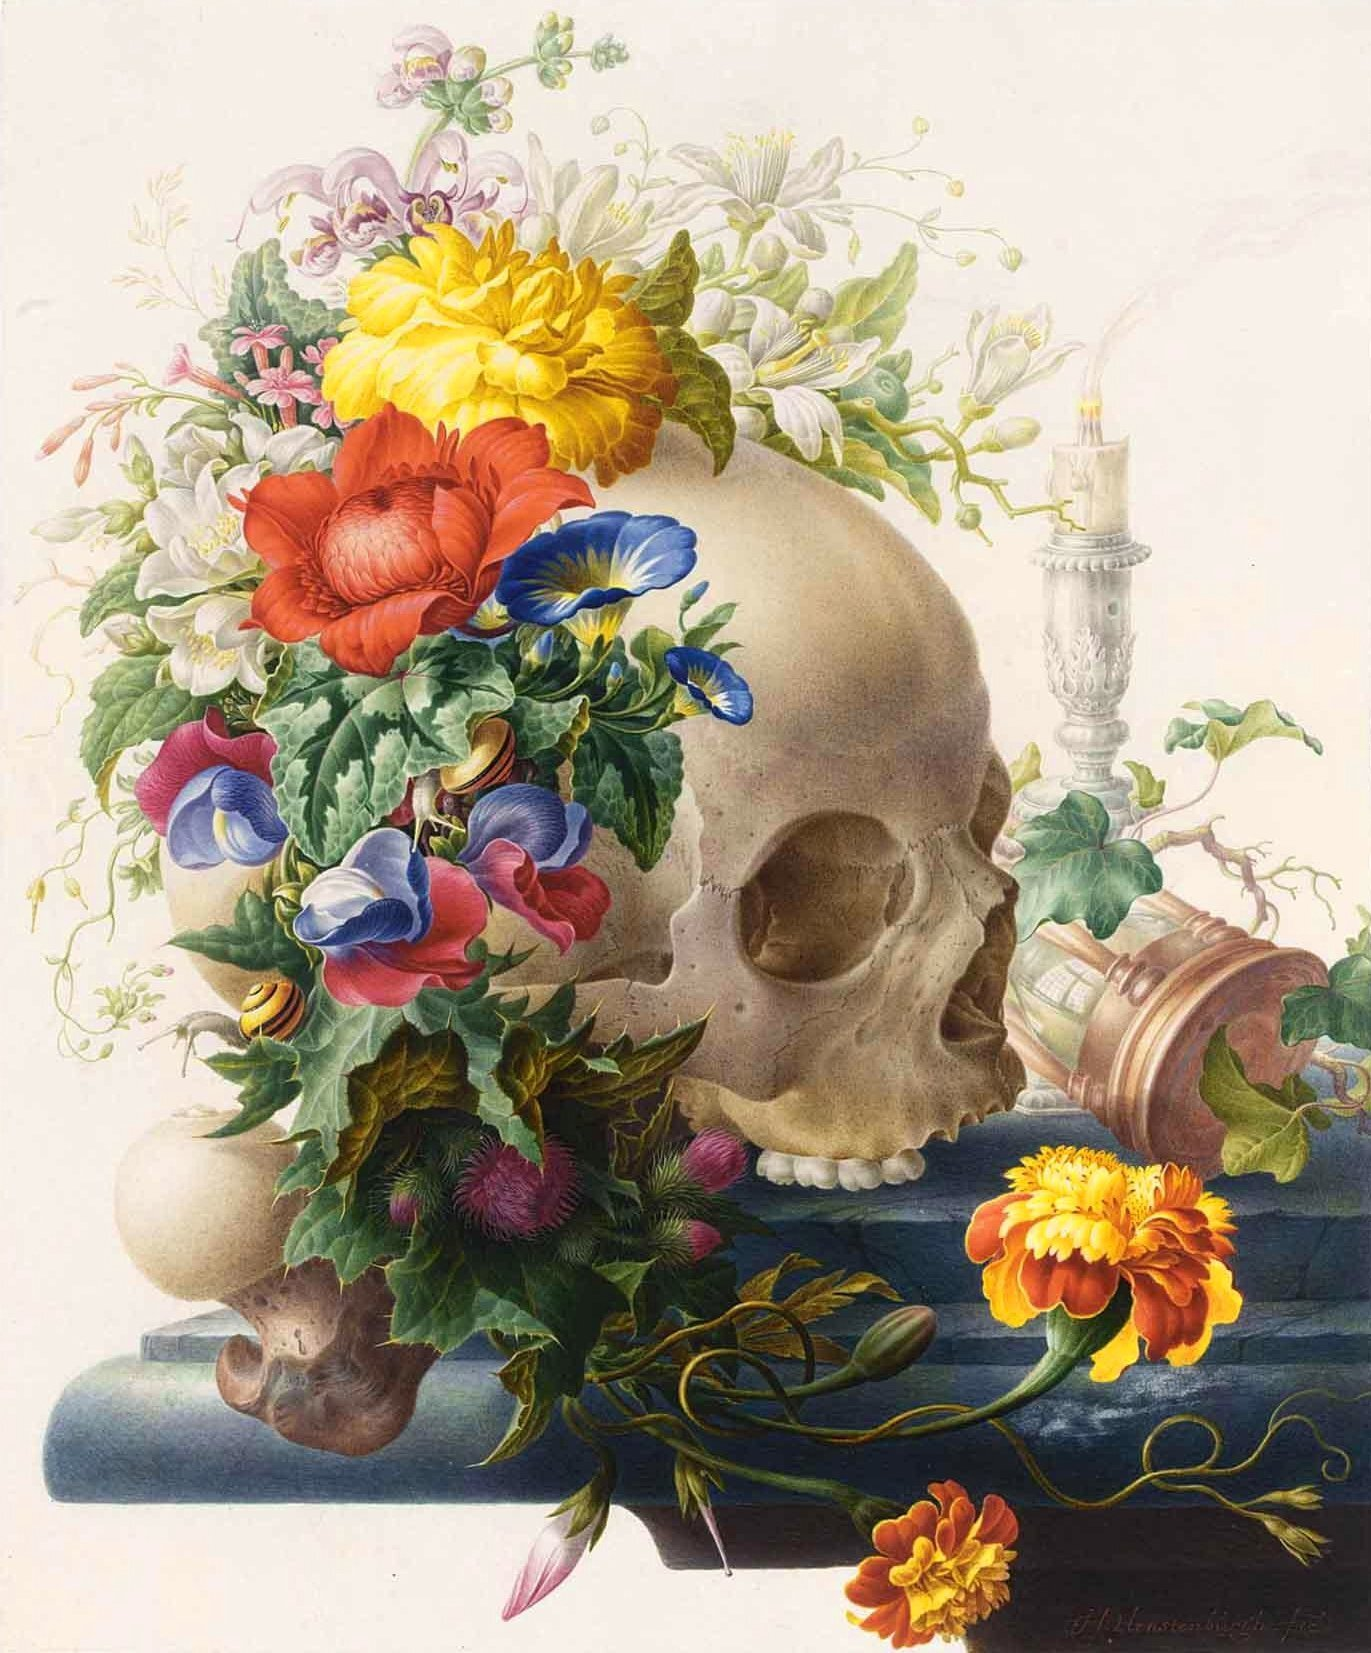 Vanitas-Still-Life-with-a-Skull-Wreathed-with-Flowers-I-Herman-Henstenburgh-oil-painting.jpeg